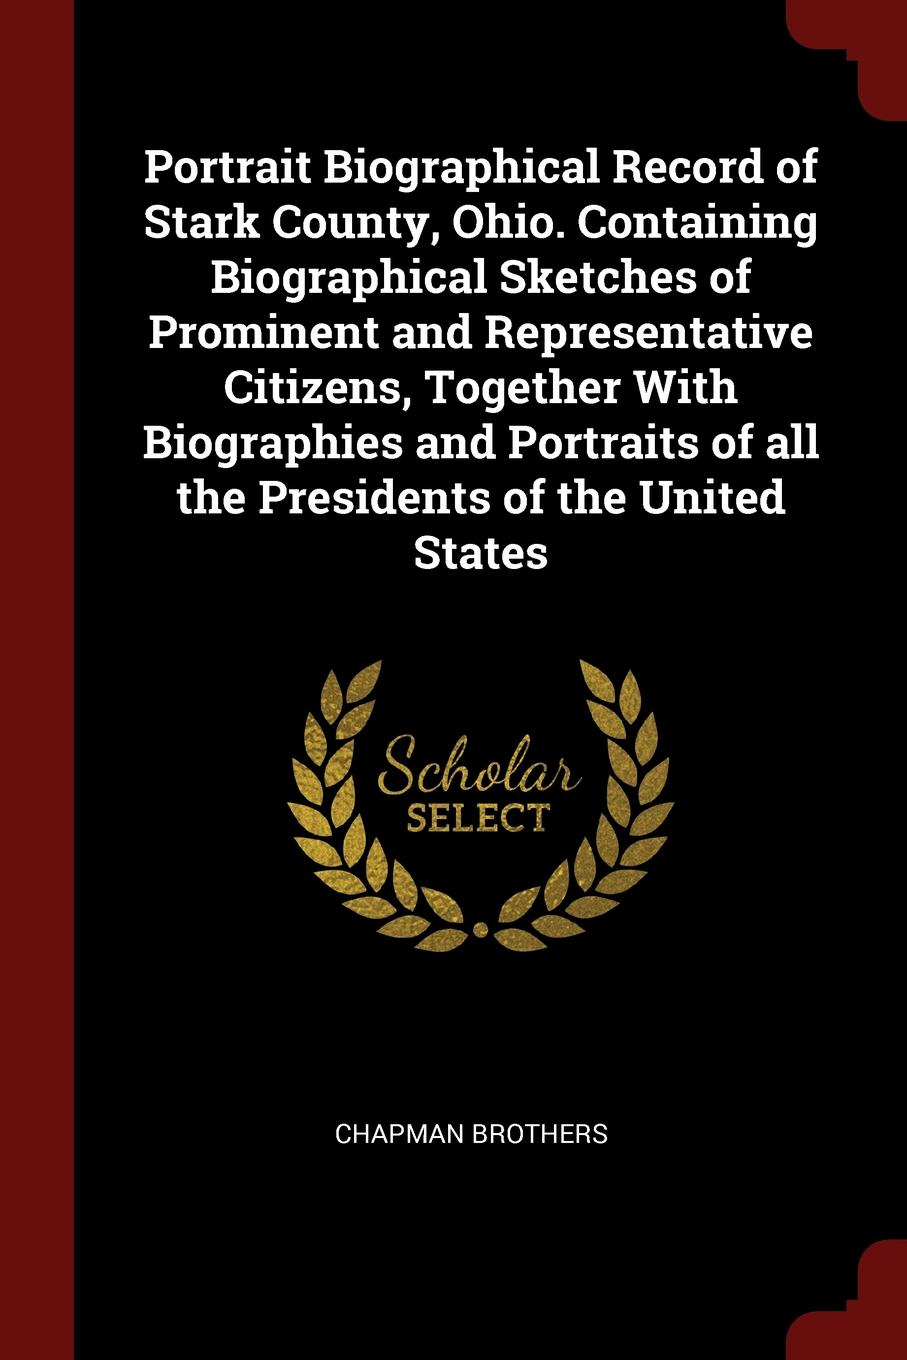 Chapman Brothers Portrait Biographical Record of Stark County, Ohio. Containing Biographical Sketches of Prominent and Representative Citizens, Together With Biographies and Portraits of all the Presidents of the United States